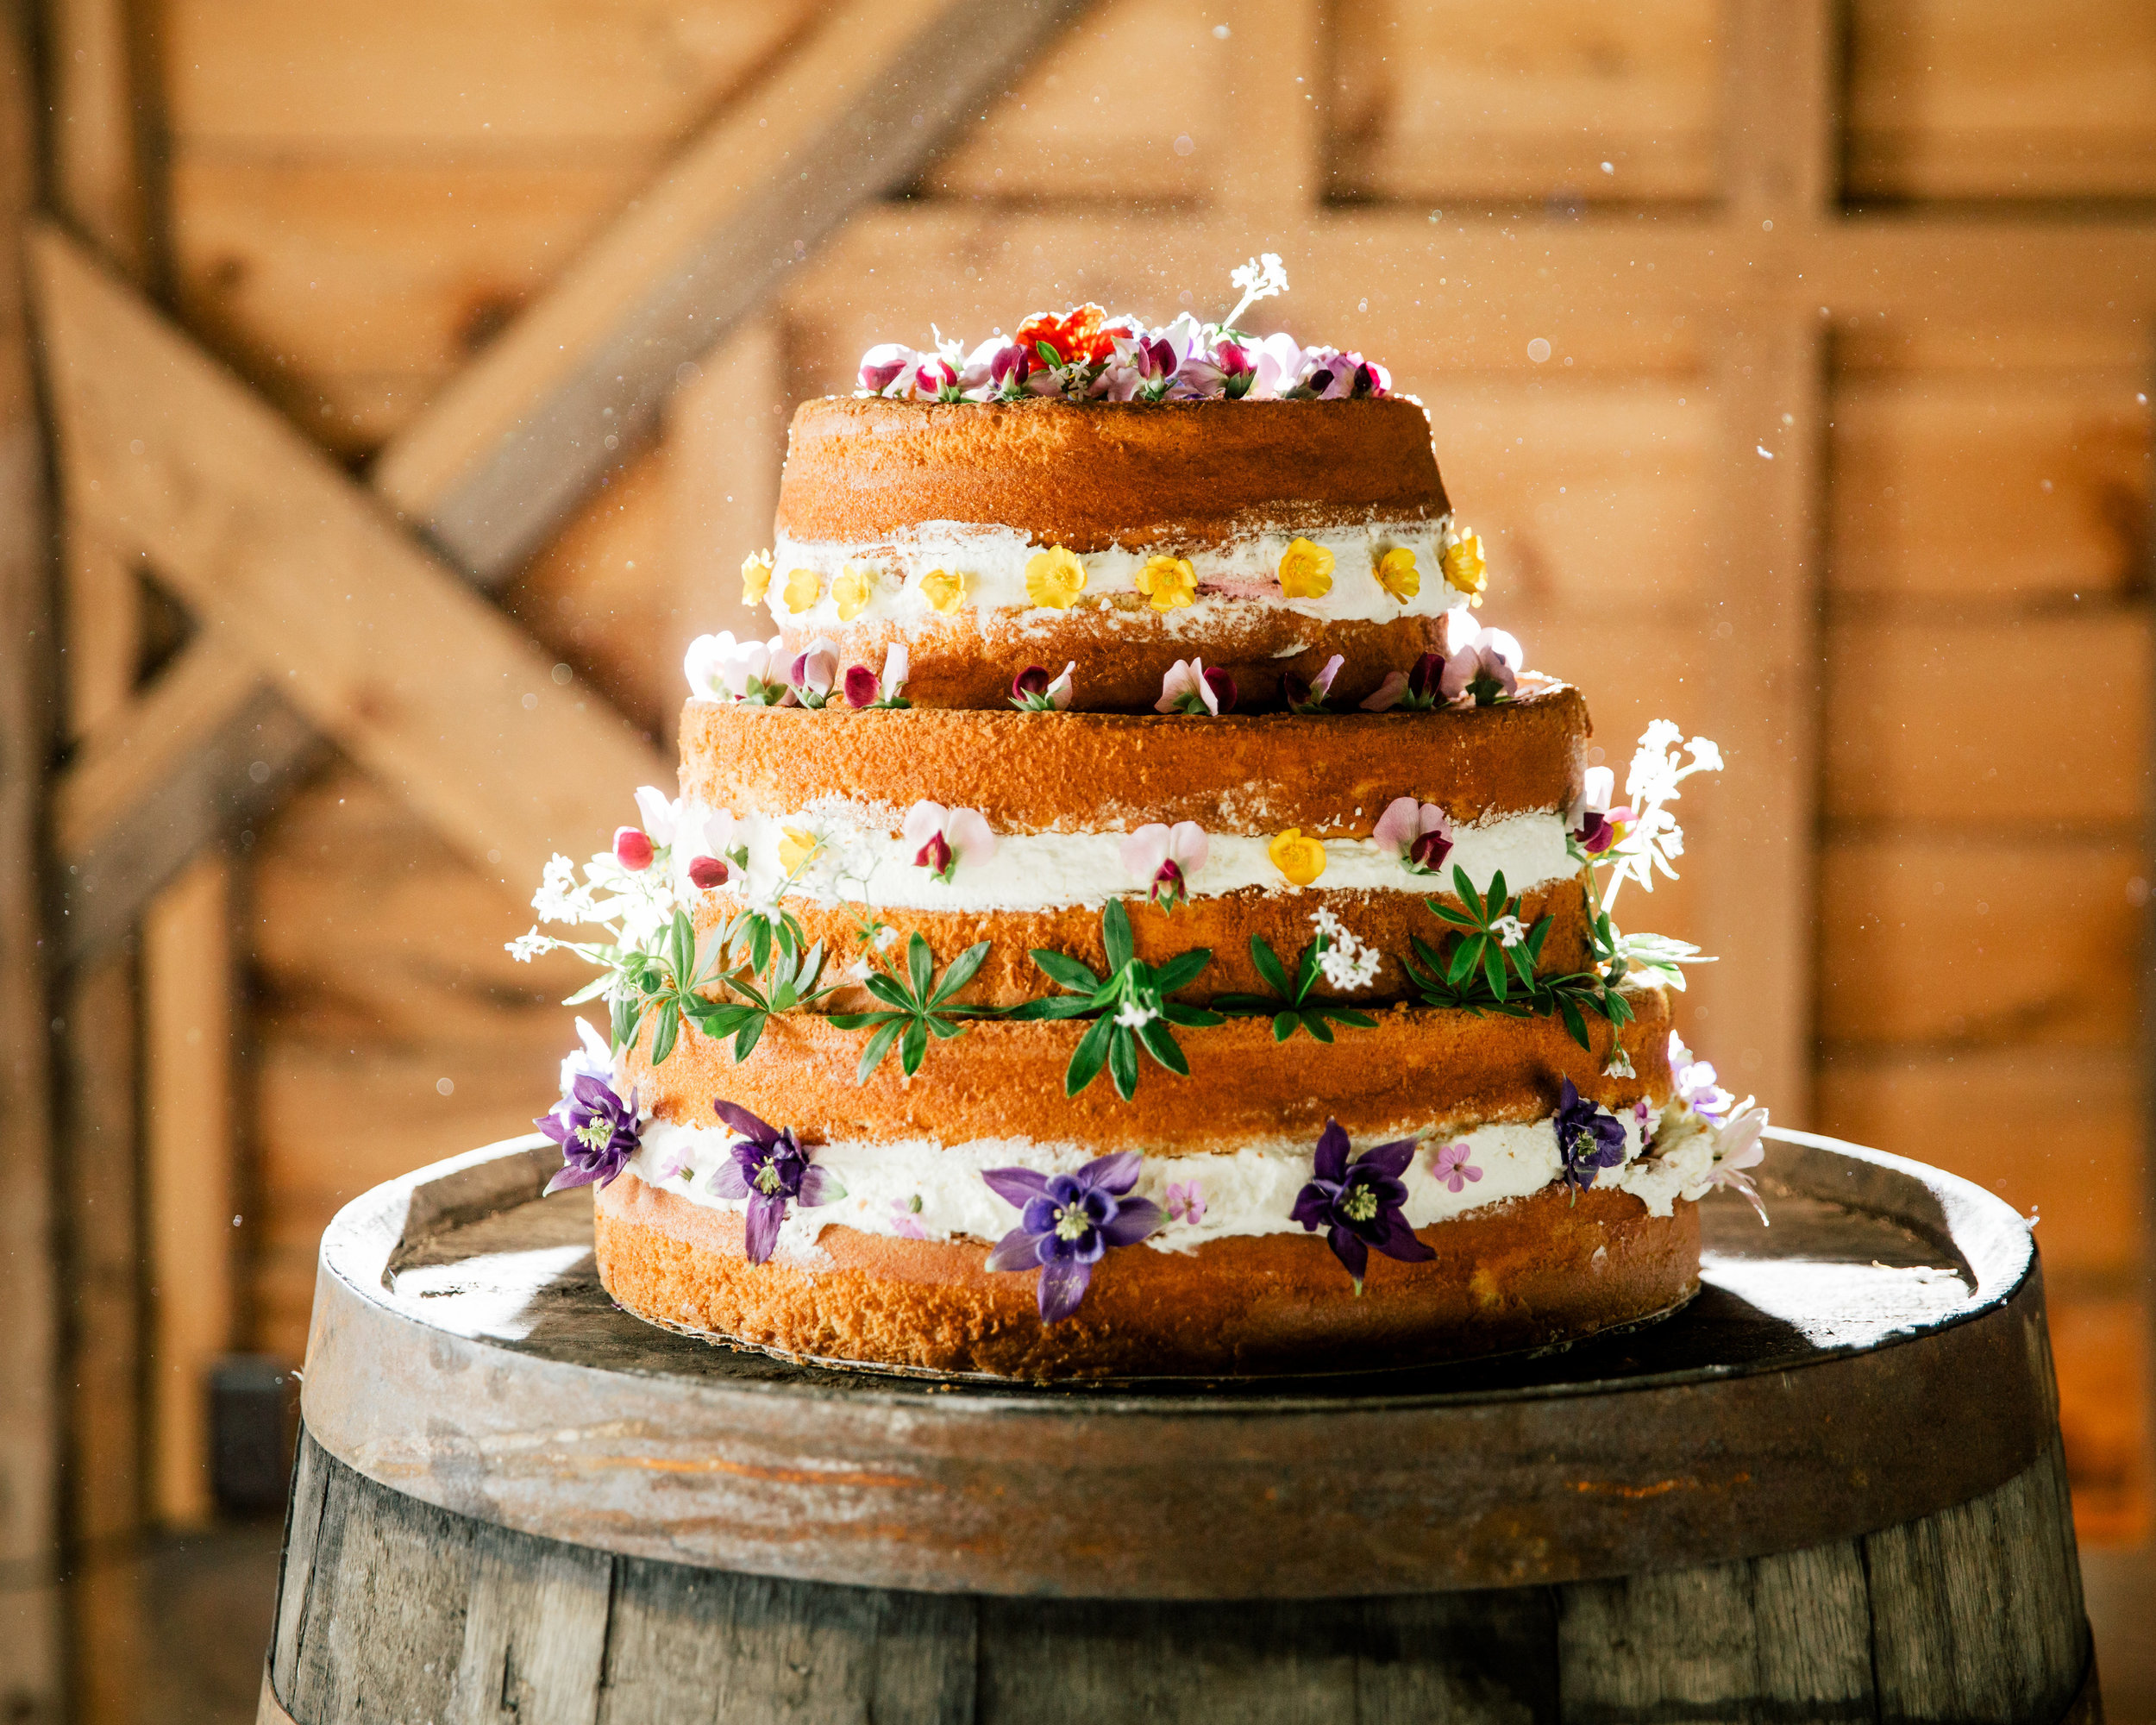 We adorn the cake with edible flowers grown on the farm